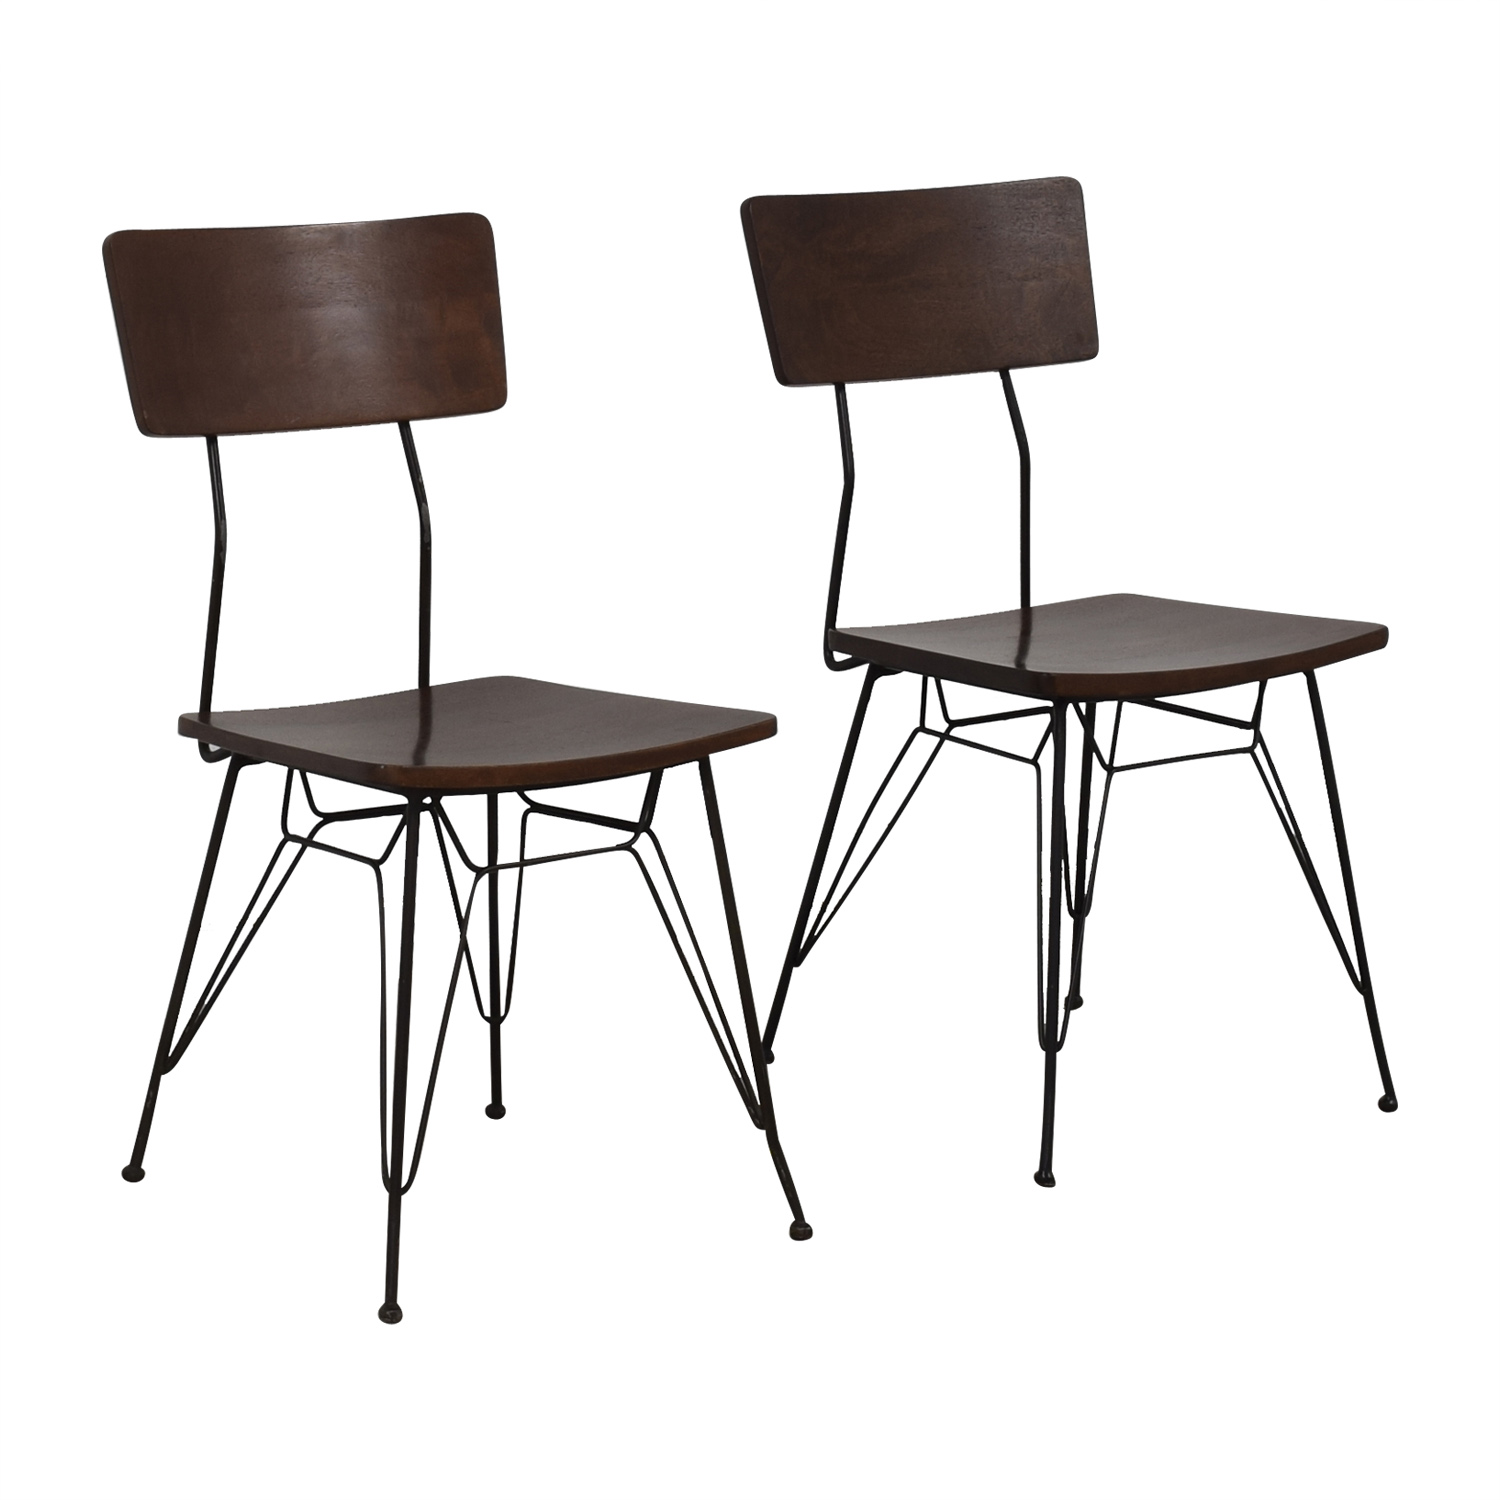 buy Crate & Barrel Elston Dining Chairs Crate & Barrel Dining Chairs